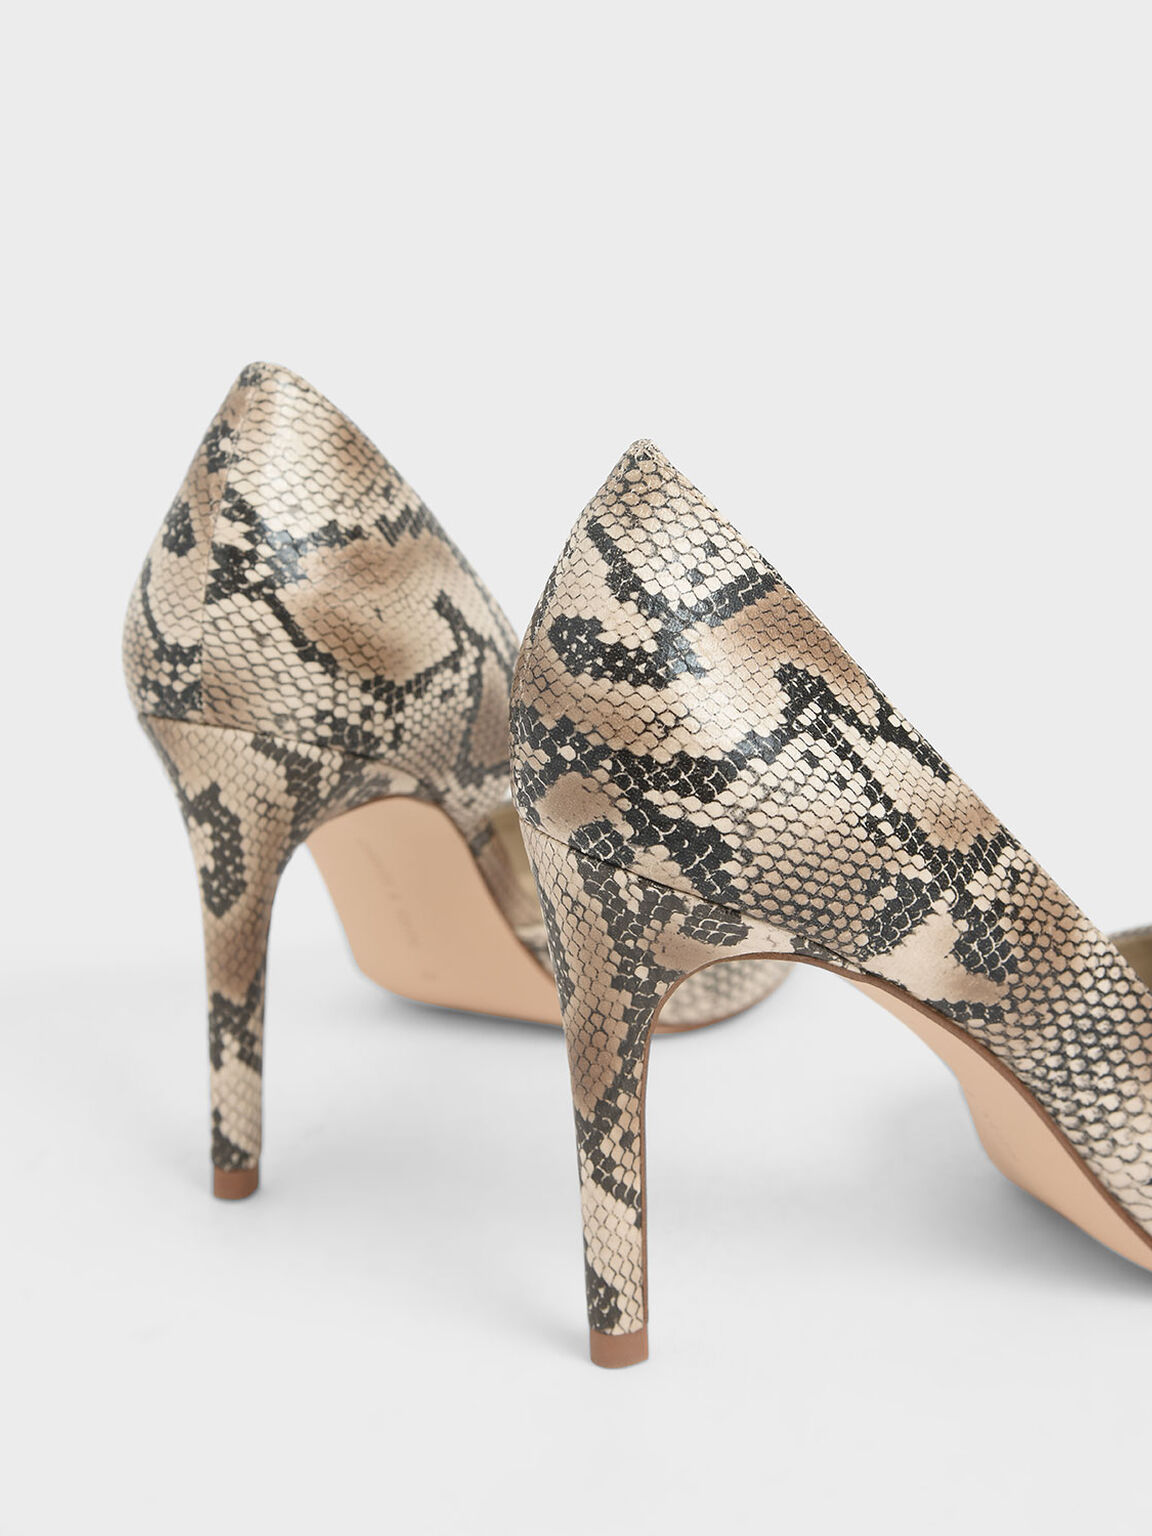 Snake Print D'Orsay Stiletto Pumps, Multi, hi-res